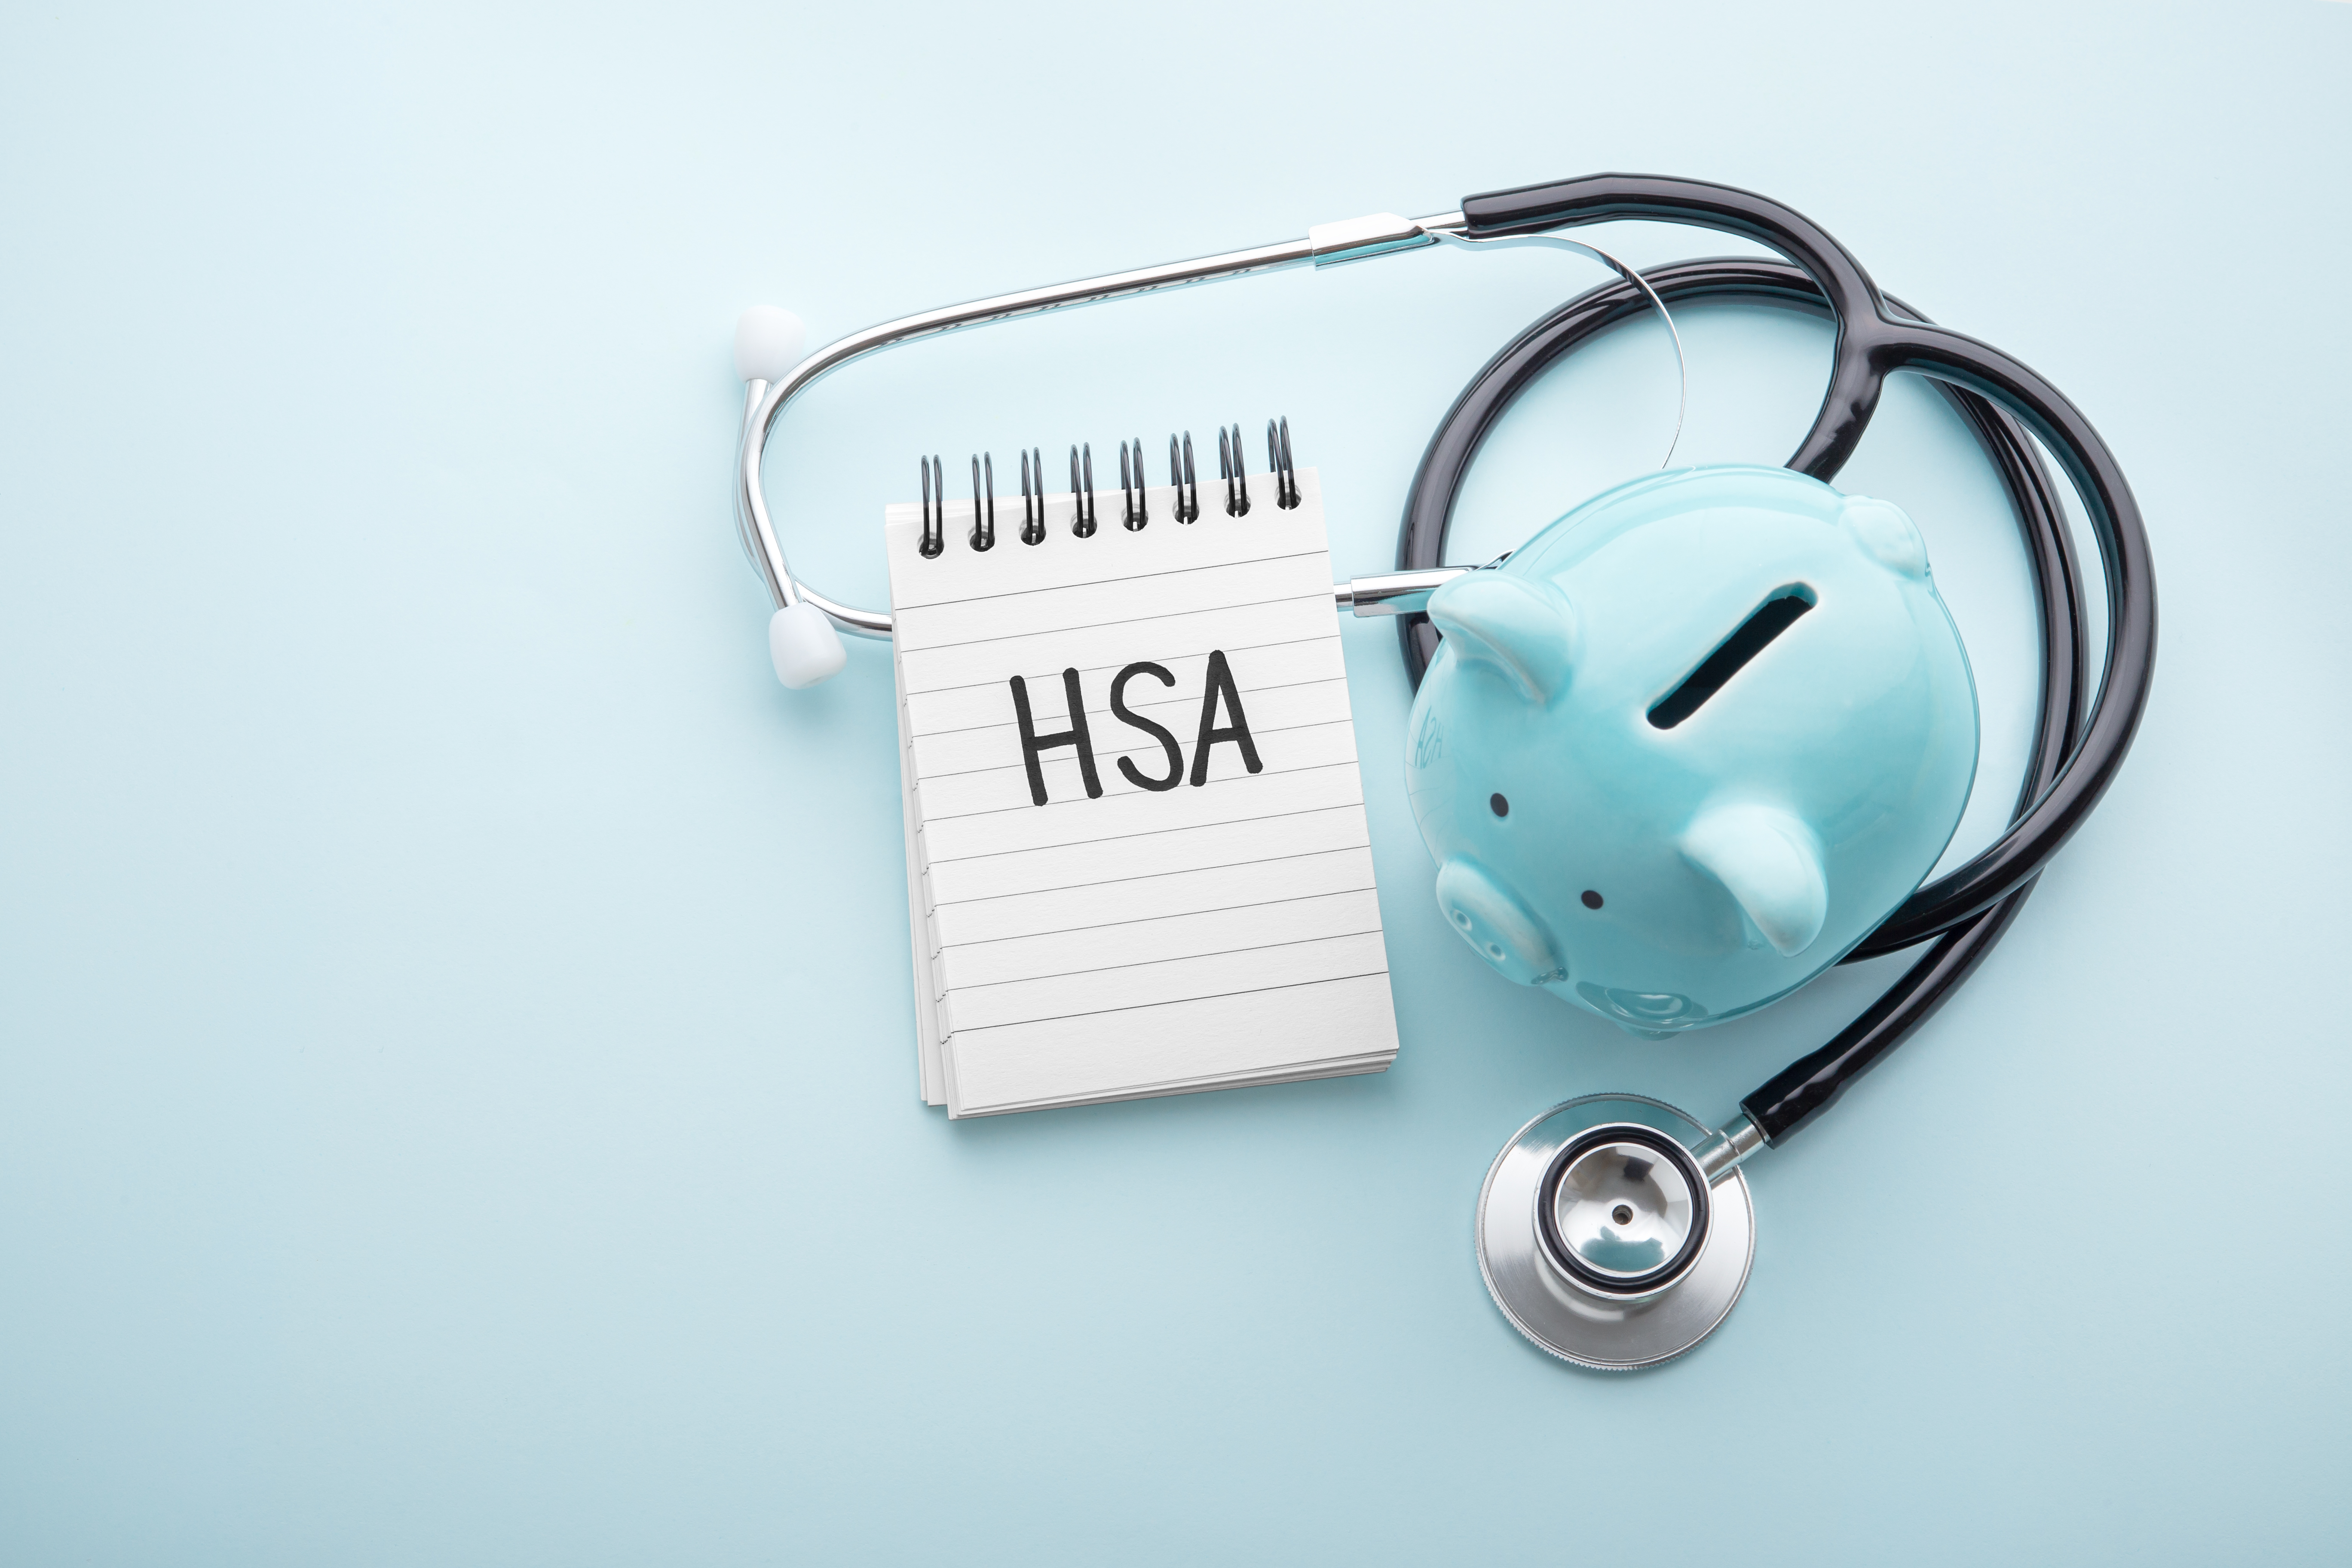 Health saving account, hsa concept, piggy bank with stethoscope on pastel blue background